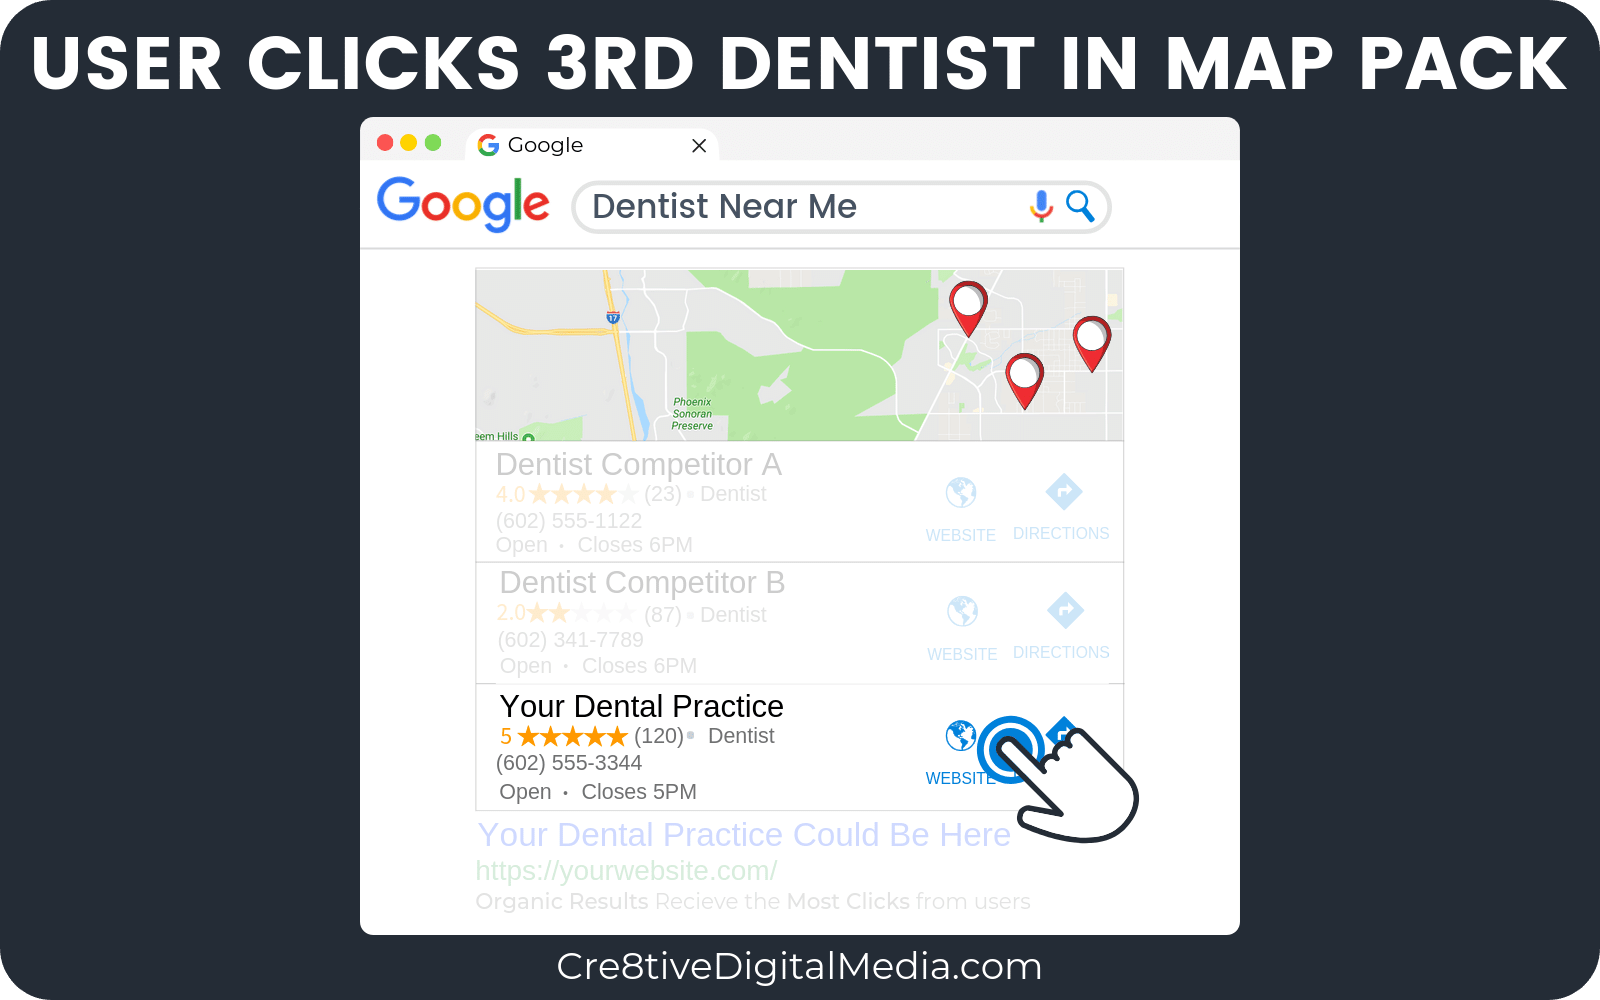 User Clicks on Third Dentist in Map Pack